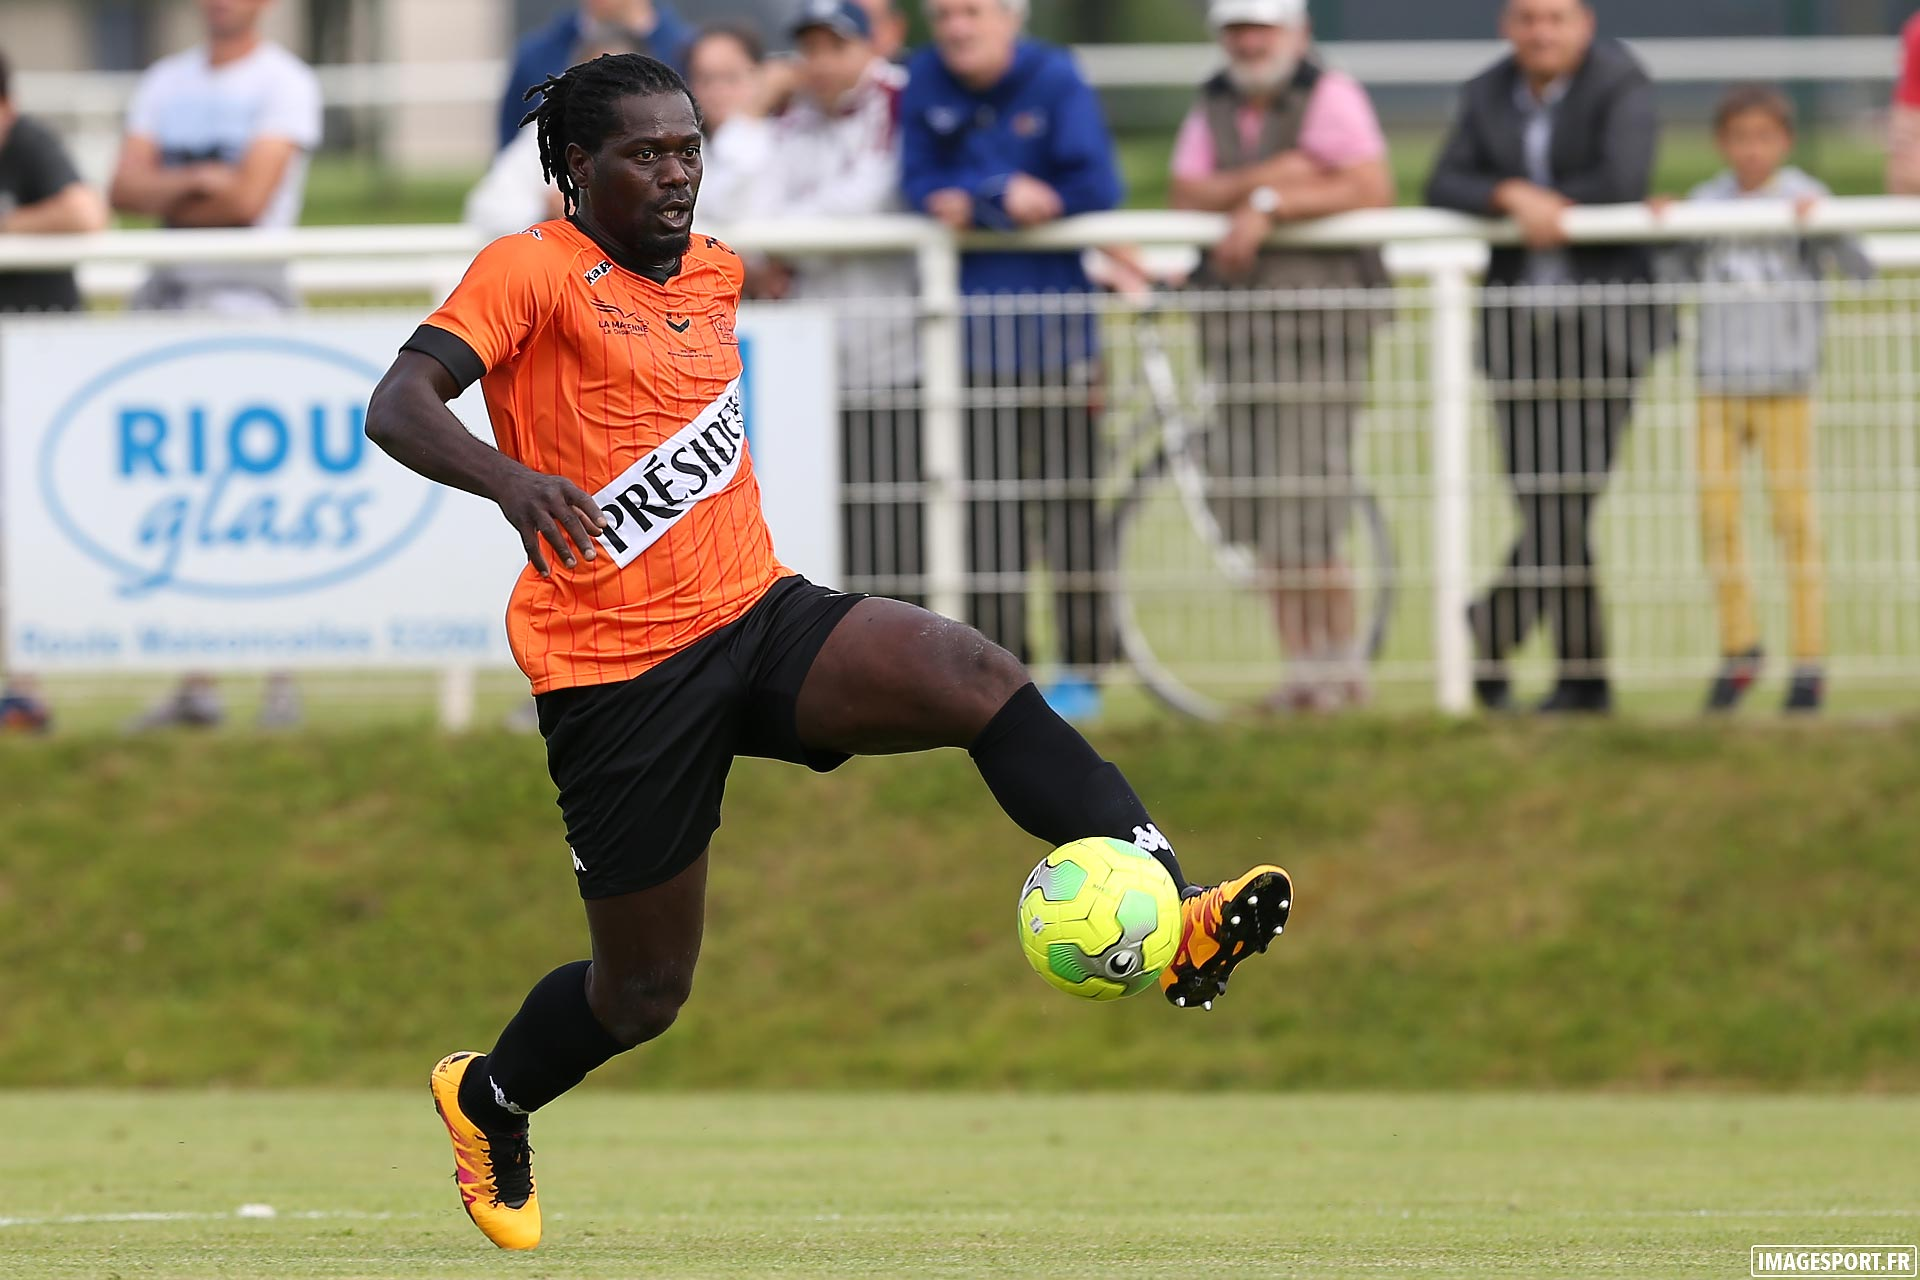 NG_Ligue2_1617_AM1_Laval-liguedumaine (21)